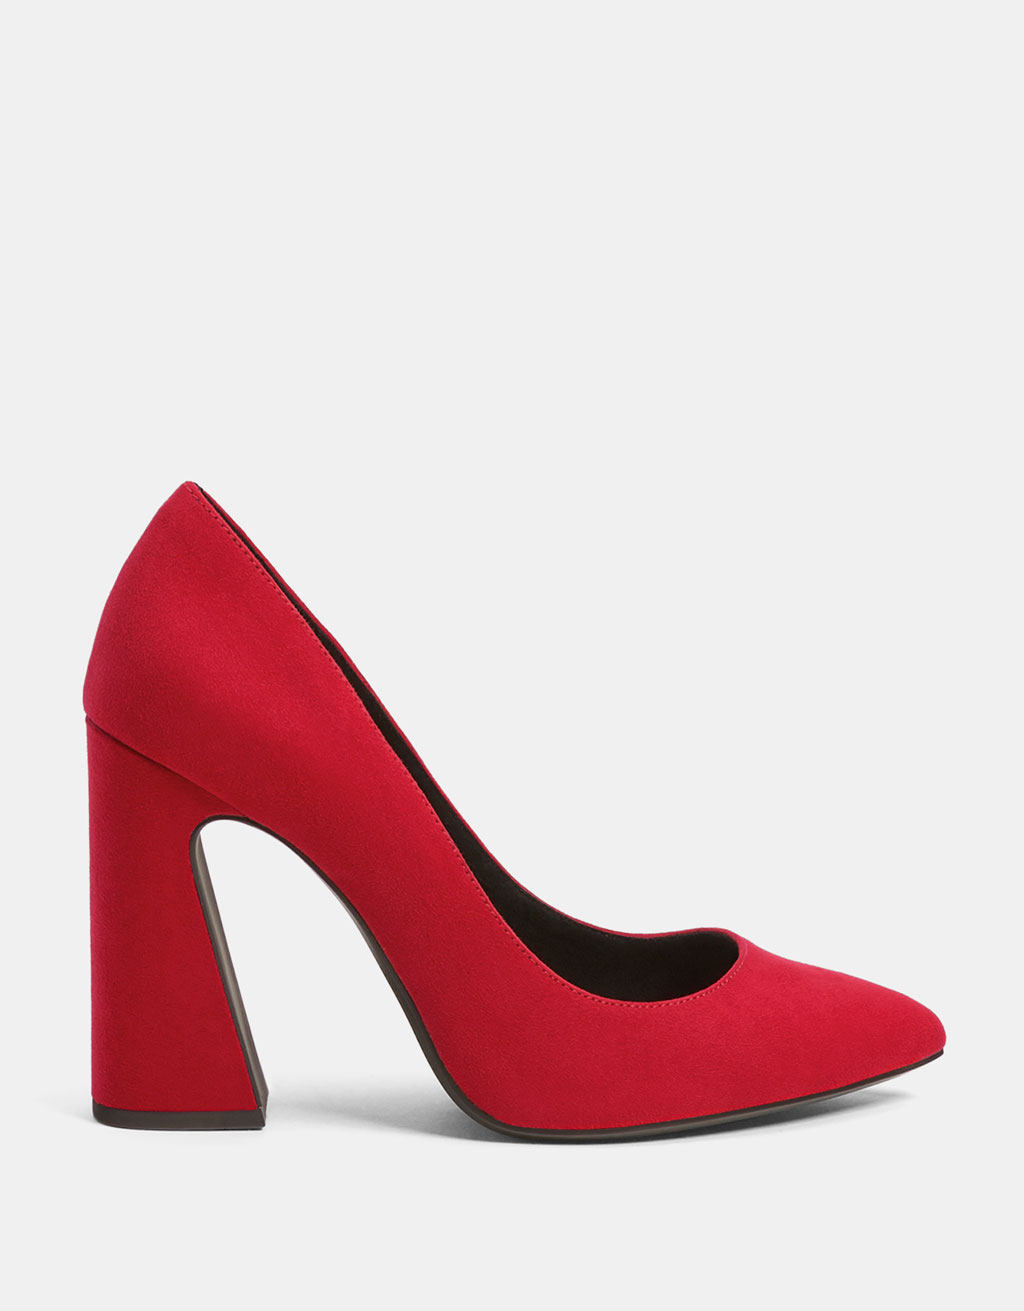 Asymmetric block heel shoes with pointed toe